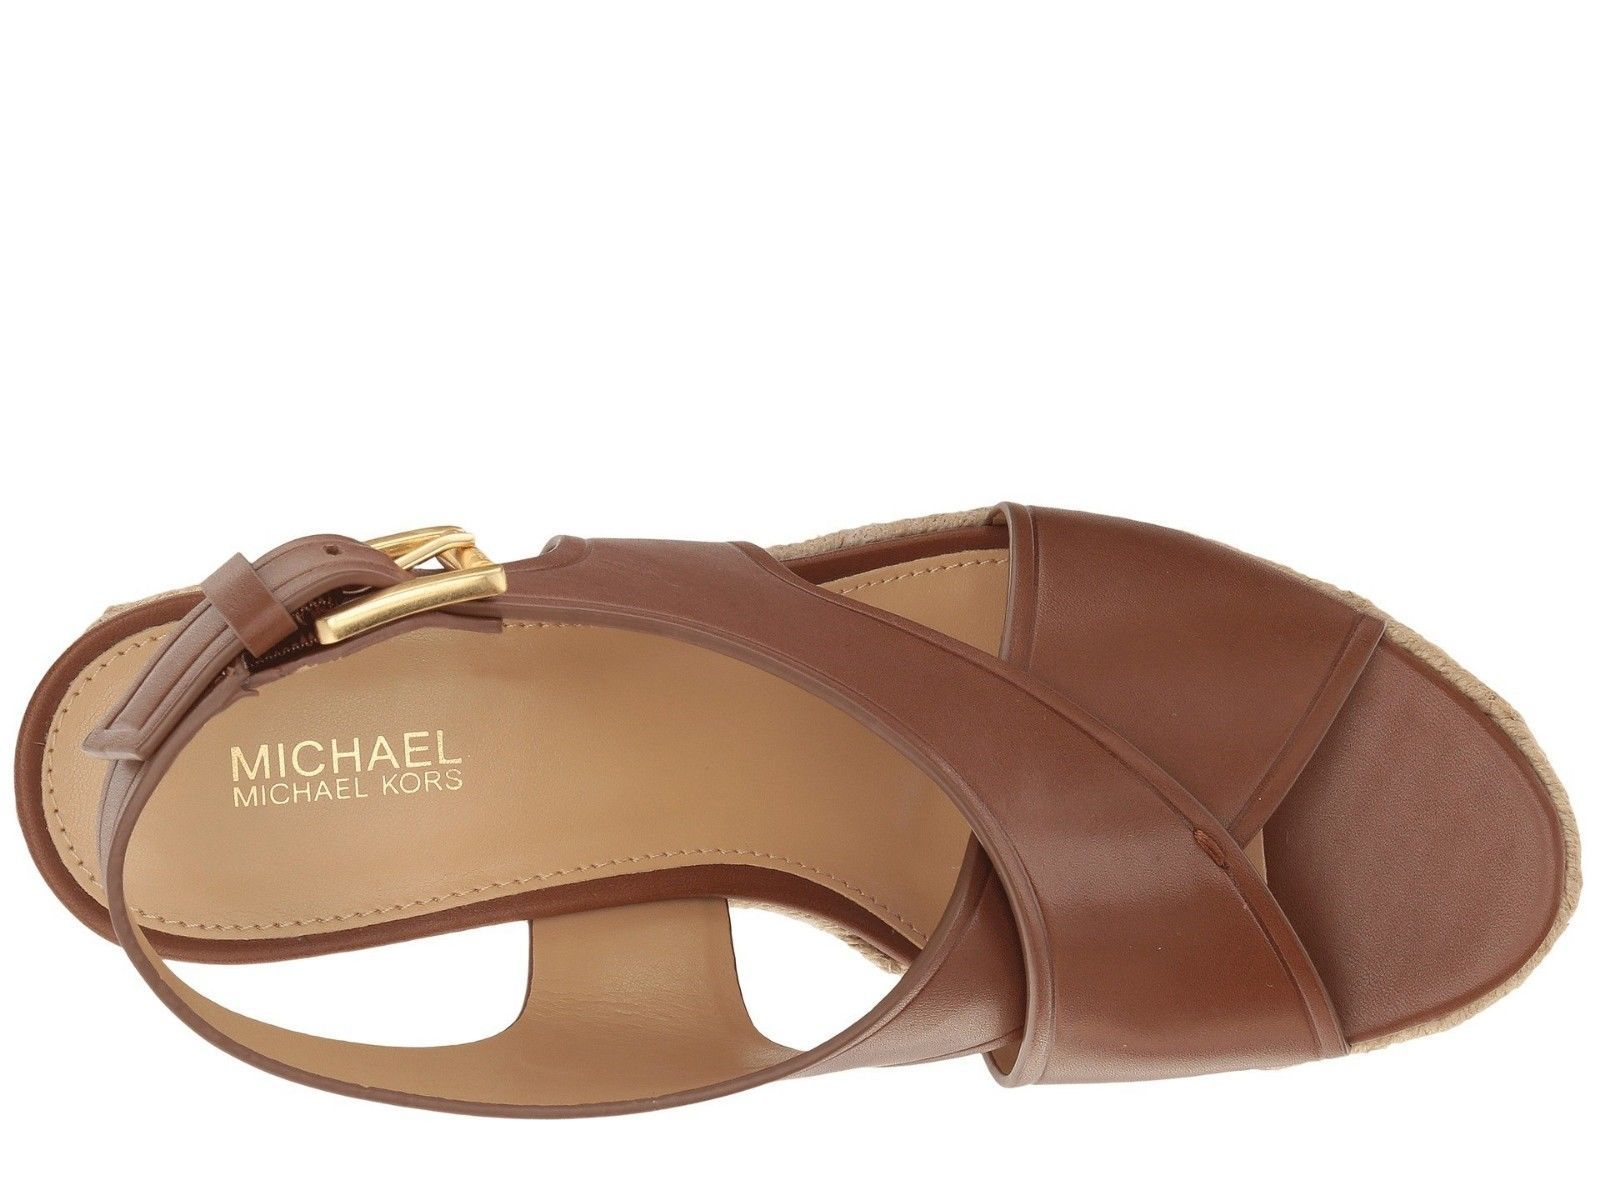 95a4099833c Michael Kors Angeline Wedge Sandal Leather Luggage(PW17C)Various Size